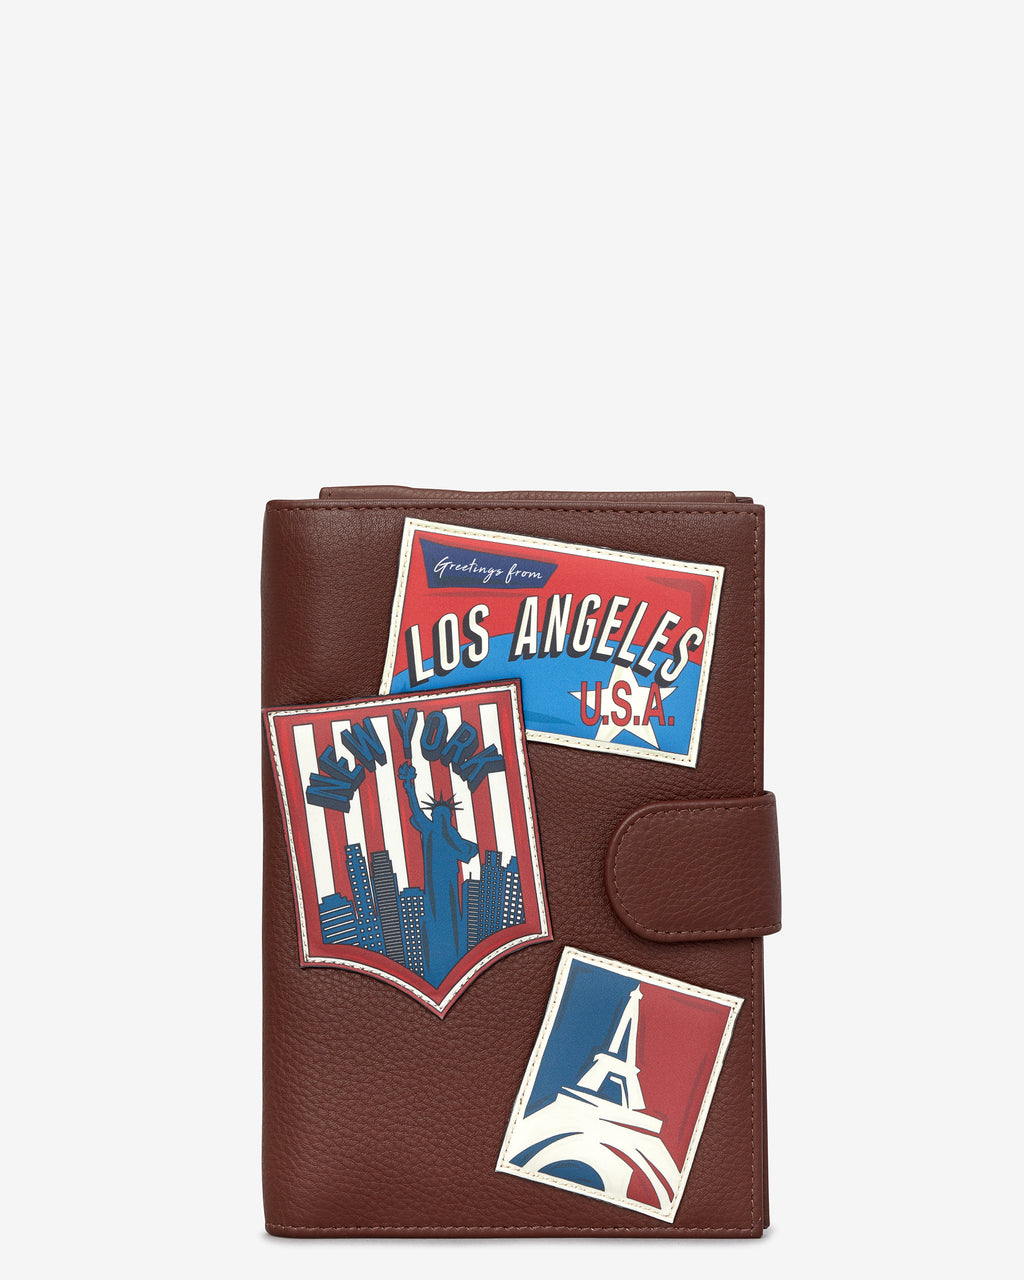 Happy Travels Leather Travel Document Holder